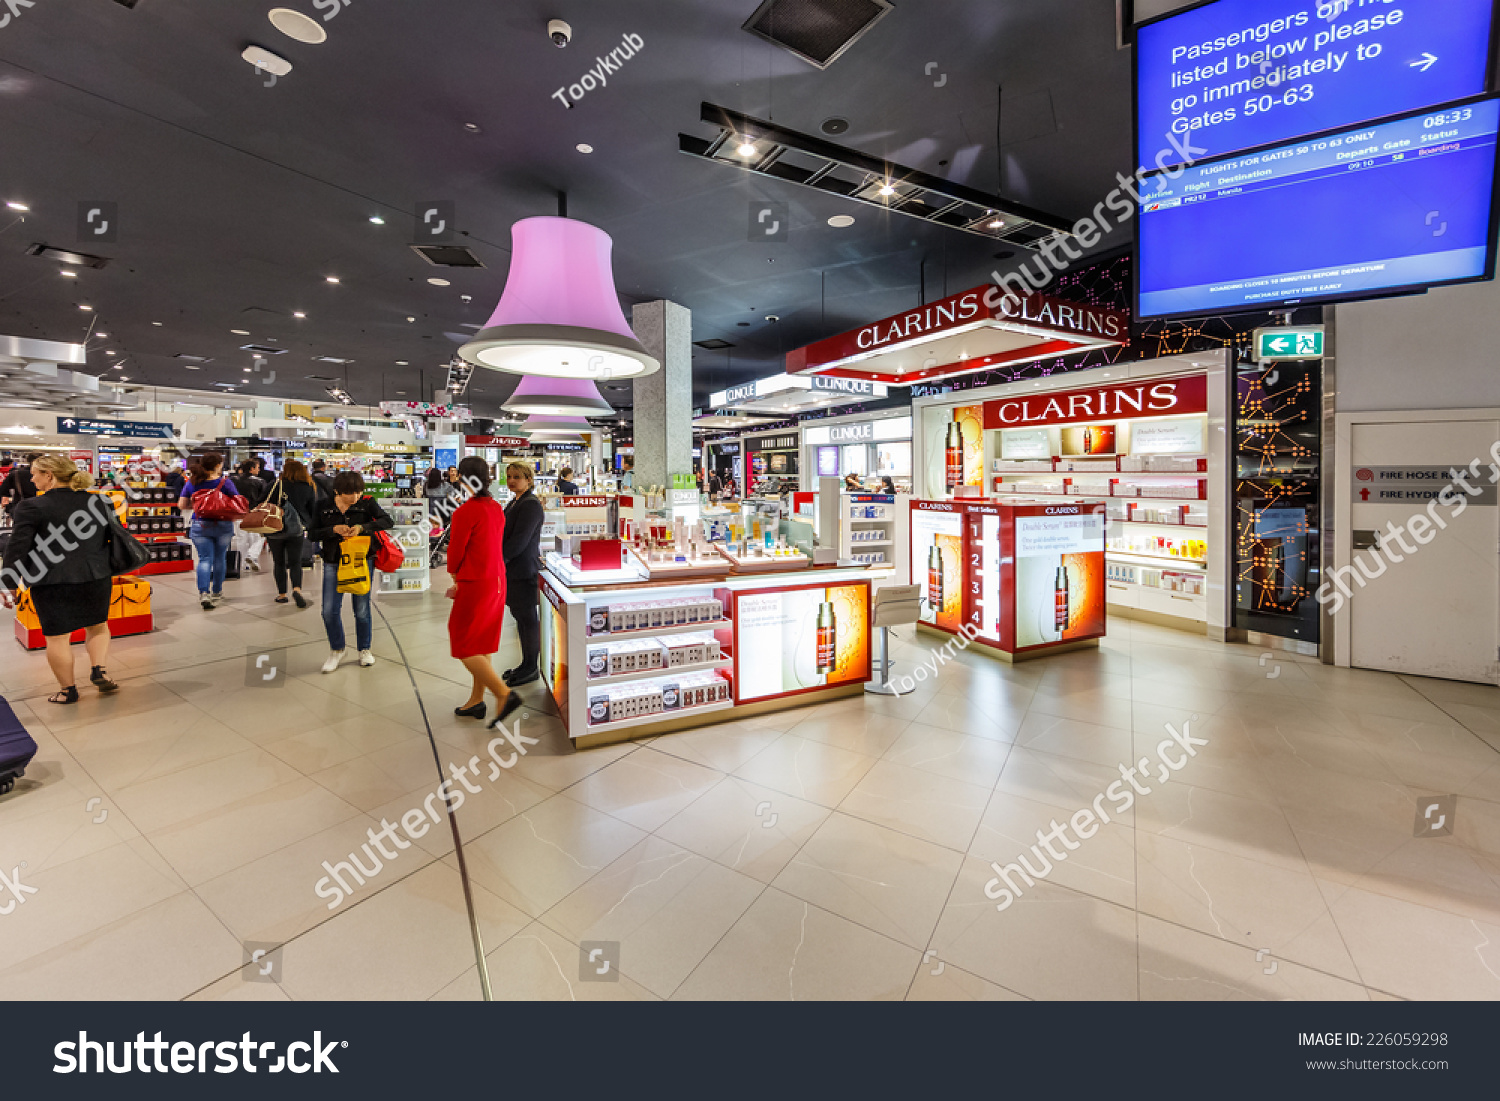 Sydney Airport Shops Sydney May 17 Duty Free Shops Stock Photo Edit Now 226059298